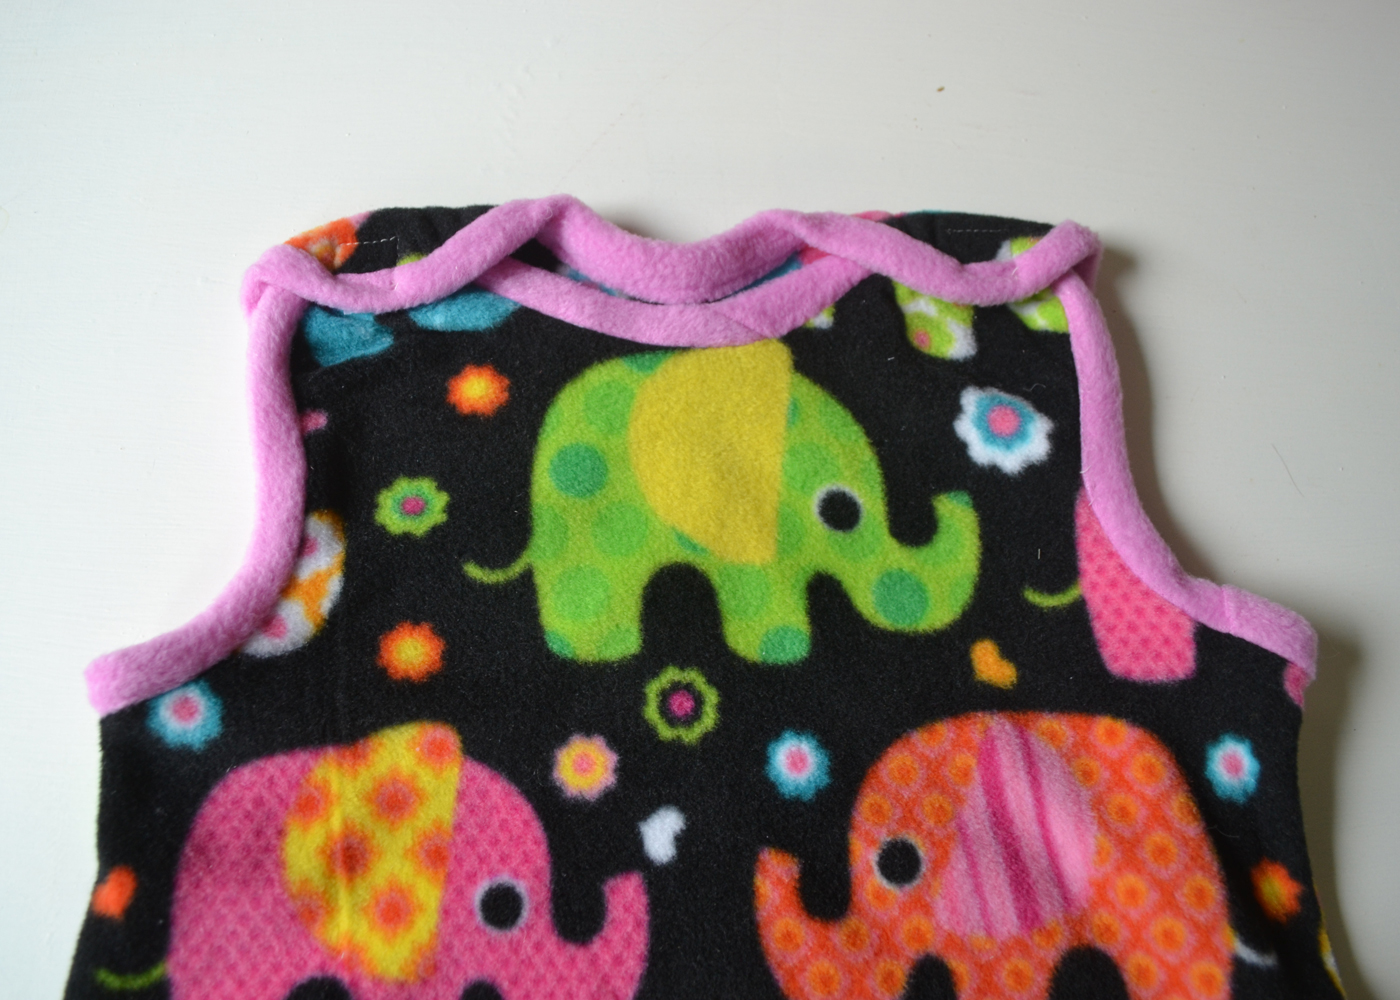 Sew an Easy Baby Sleep Sack | The DIY Mommy